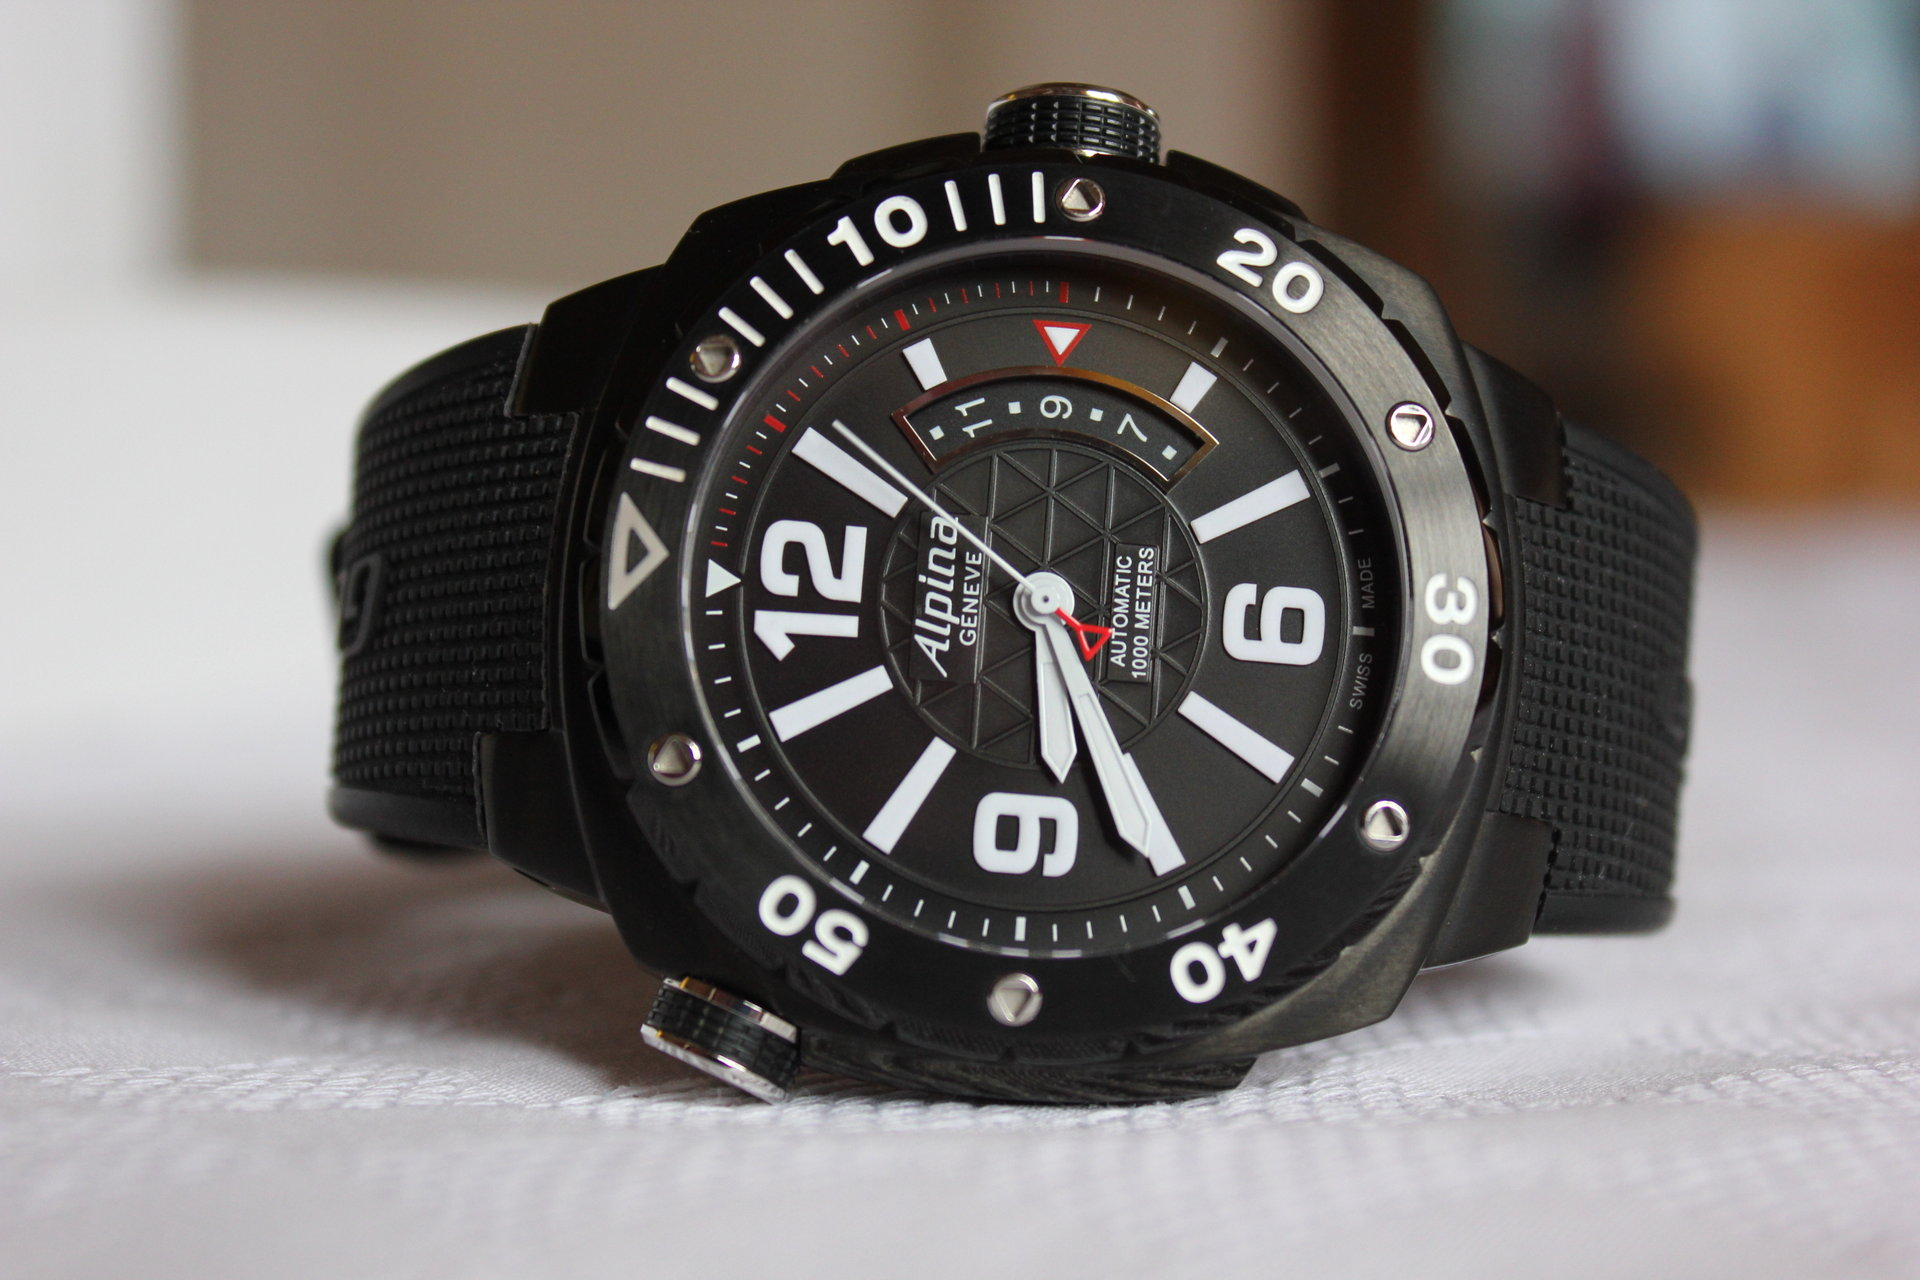 Alpina Extreme Diver 1000 Watch Review